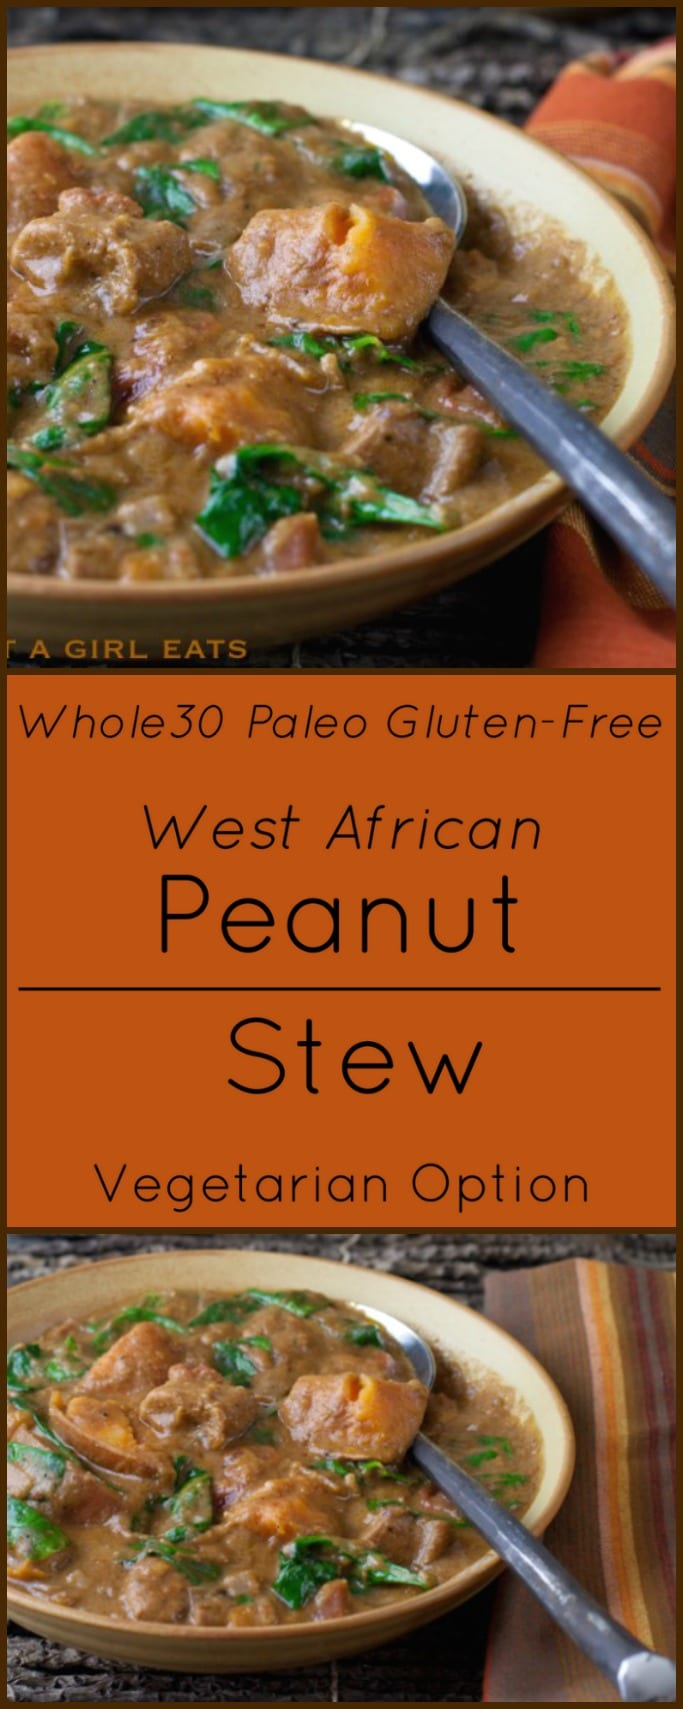 West African Peanut Stew with Chicken and Sweet Potatoes is Whole30 compliant, Gluten Free and Paleo.